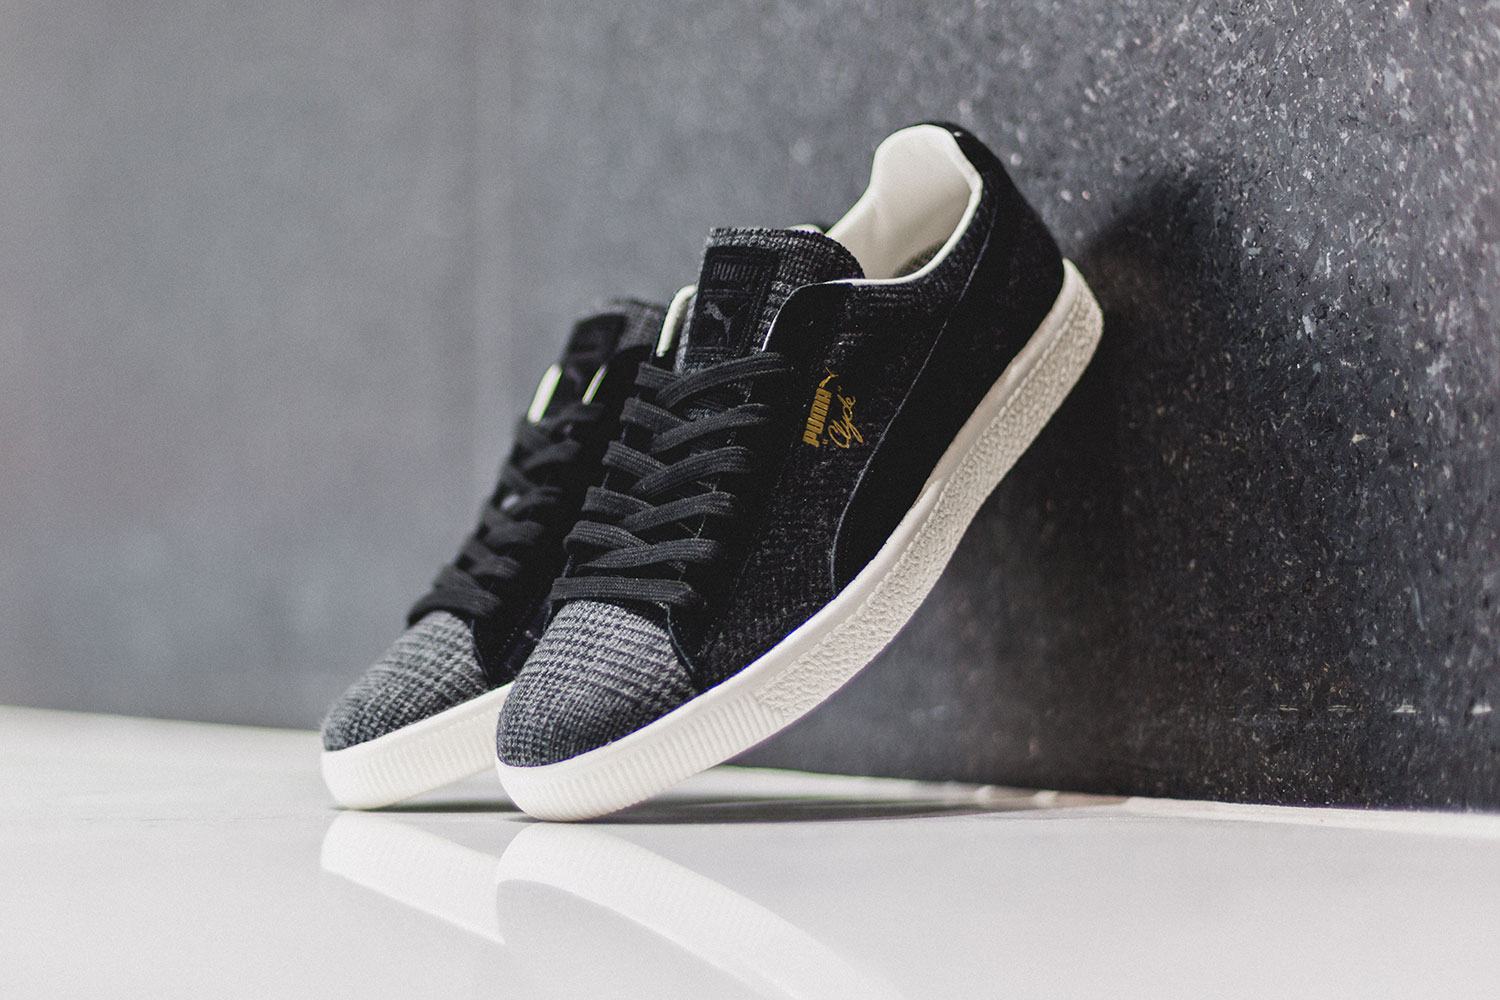 UNITED ARROWS & SONS Take on the PUMA Clyde